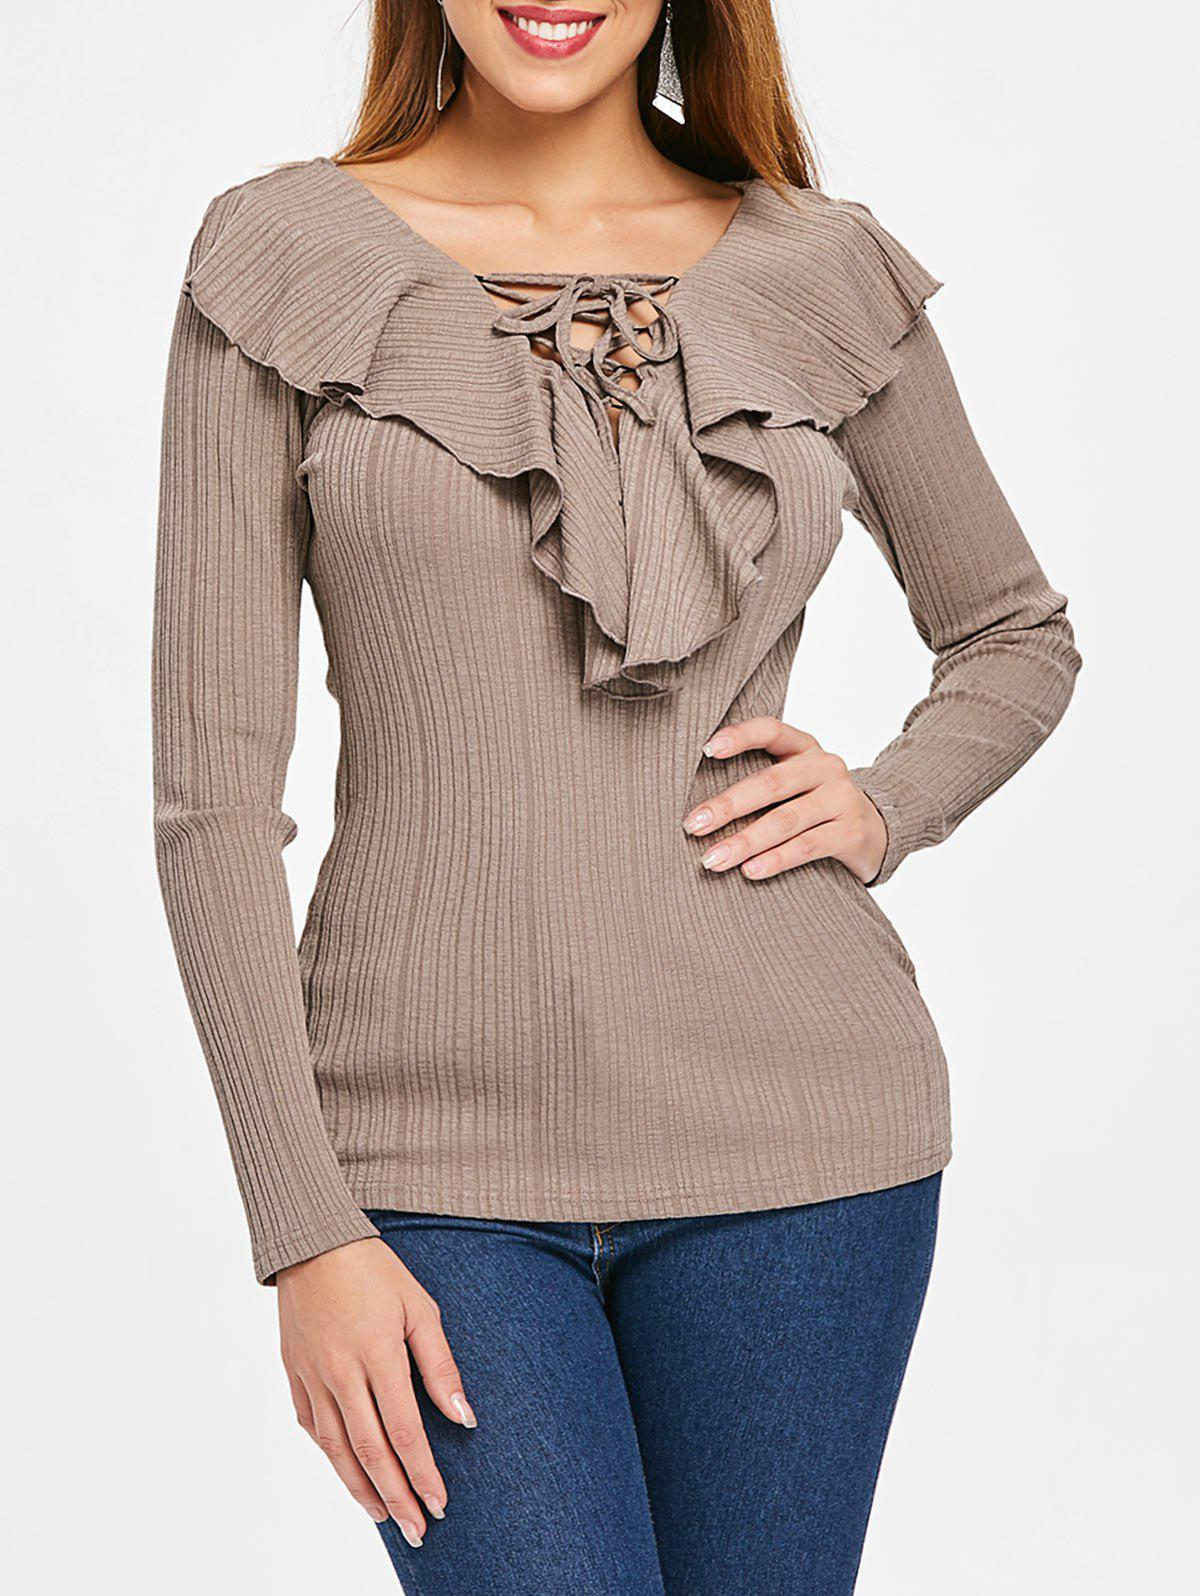 Discount Criss Cross Collar Full Sleeve Top